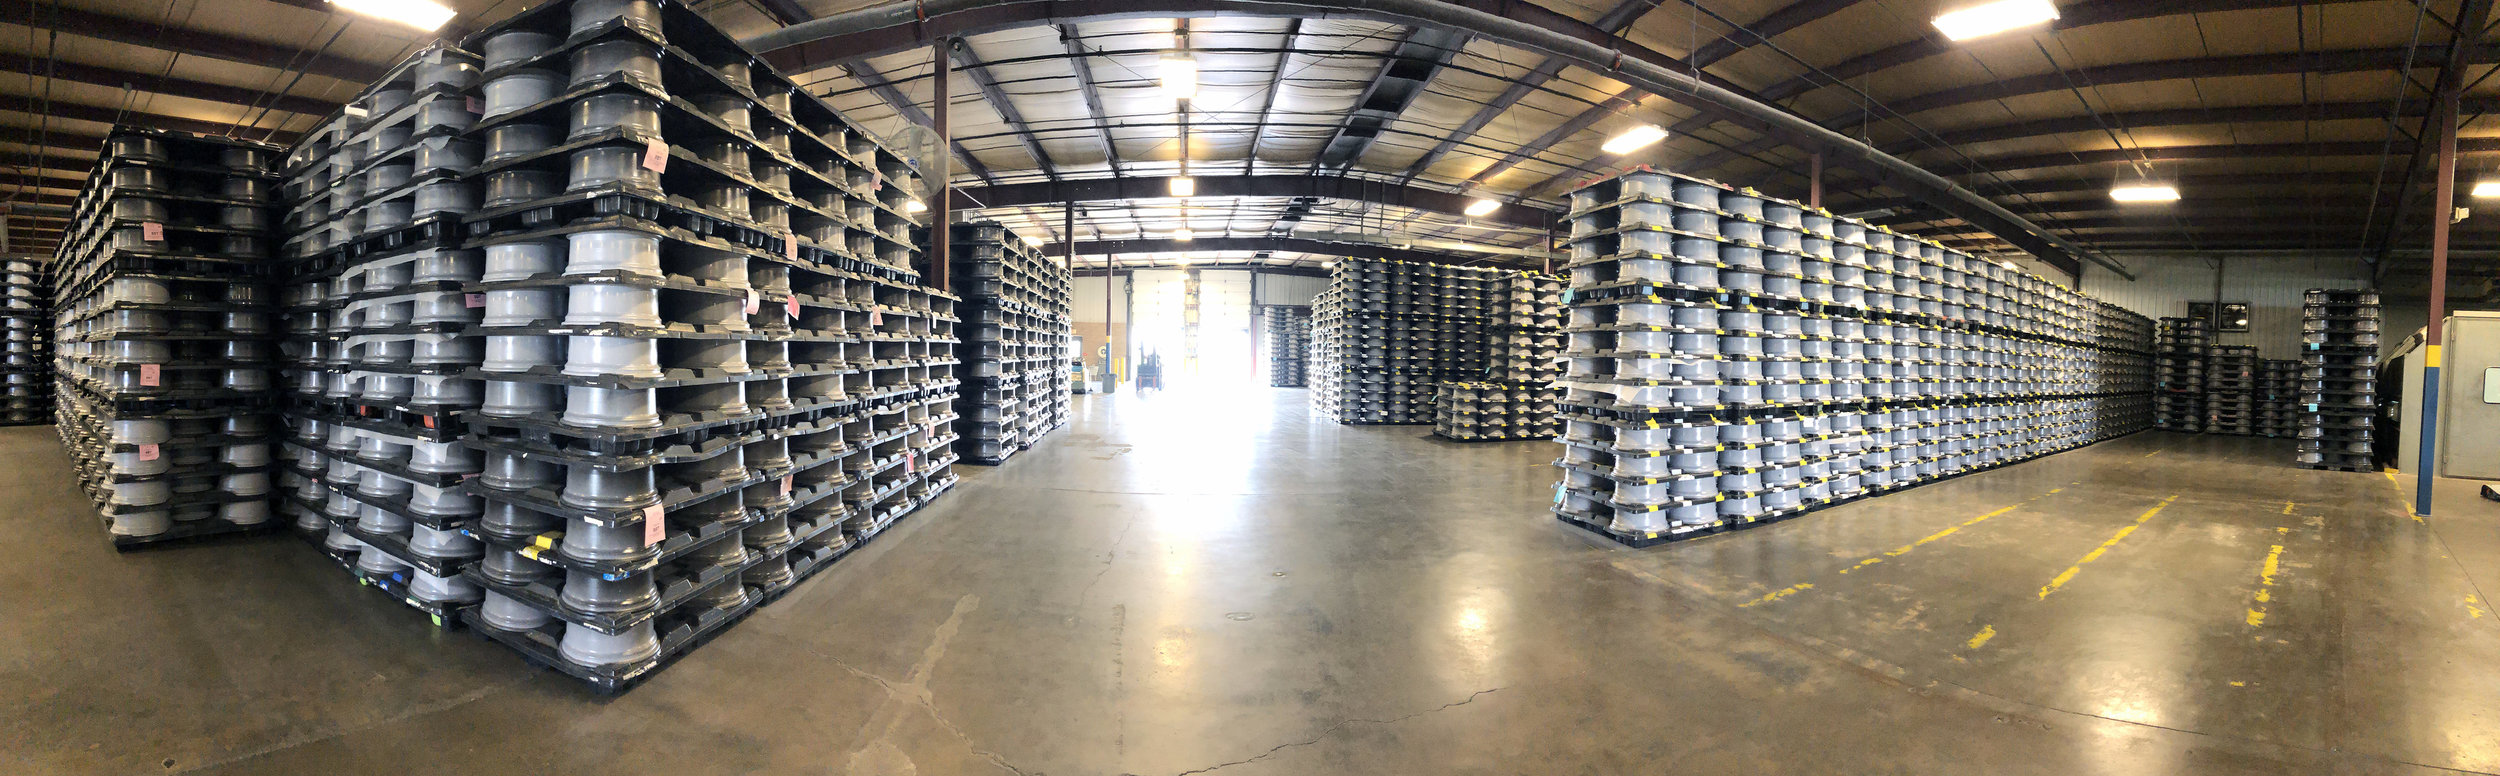 Blastics Warehouse Panorama.jpg